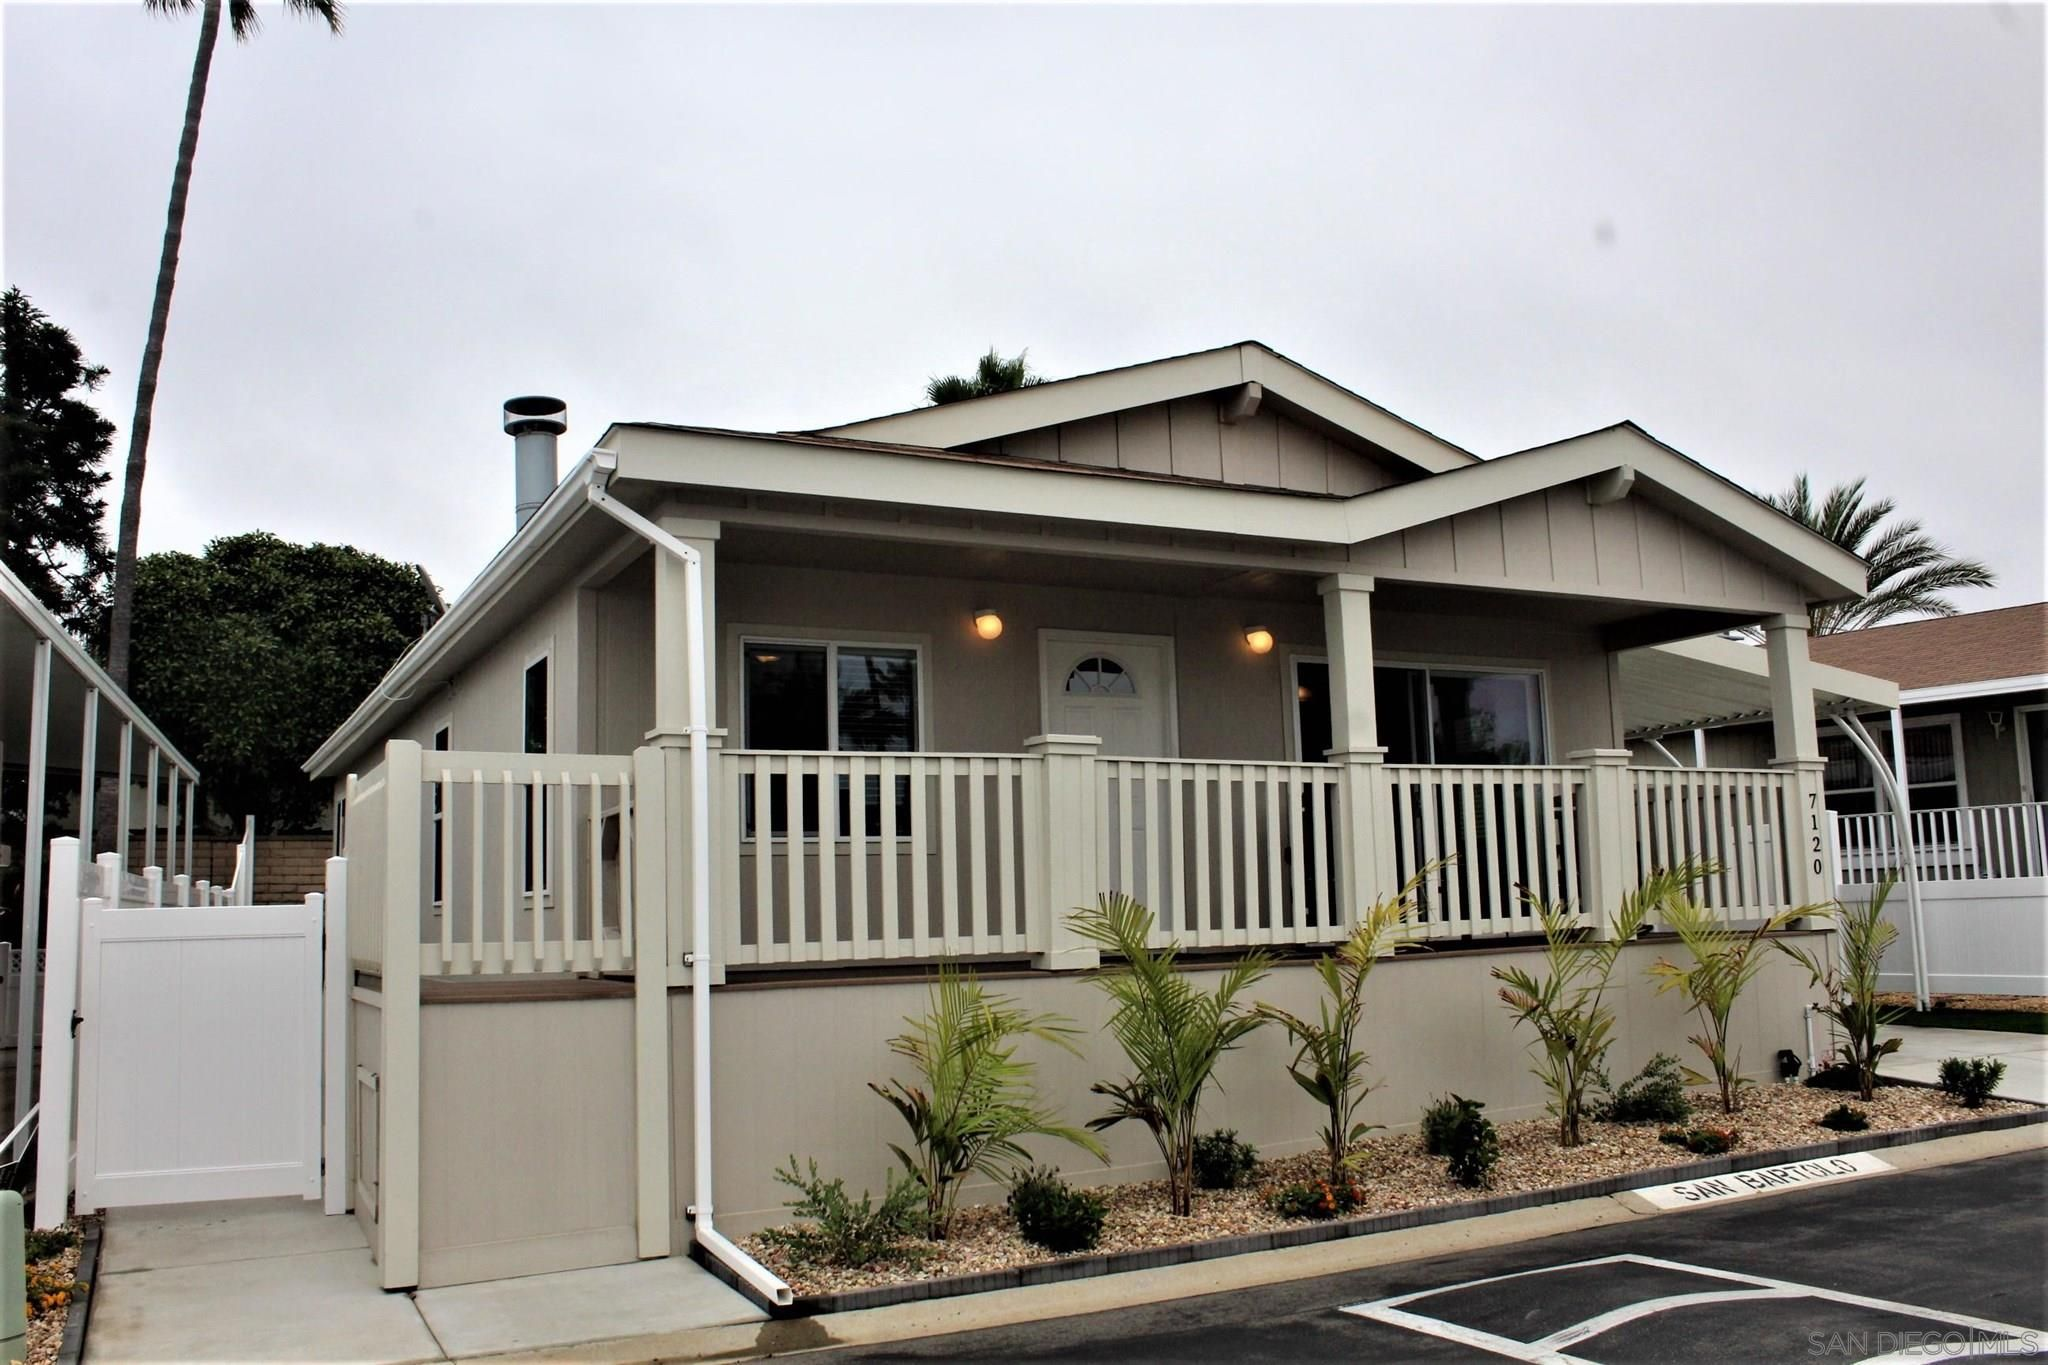 Main Photo: CARLSBAD WEST Manufactured Home for sale : 3 bedrooms : 7120 San Bartolo Street #2 in Carlsbad